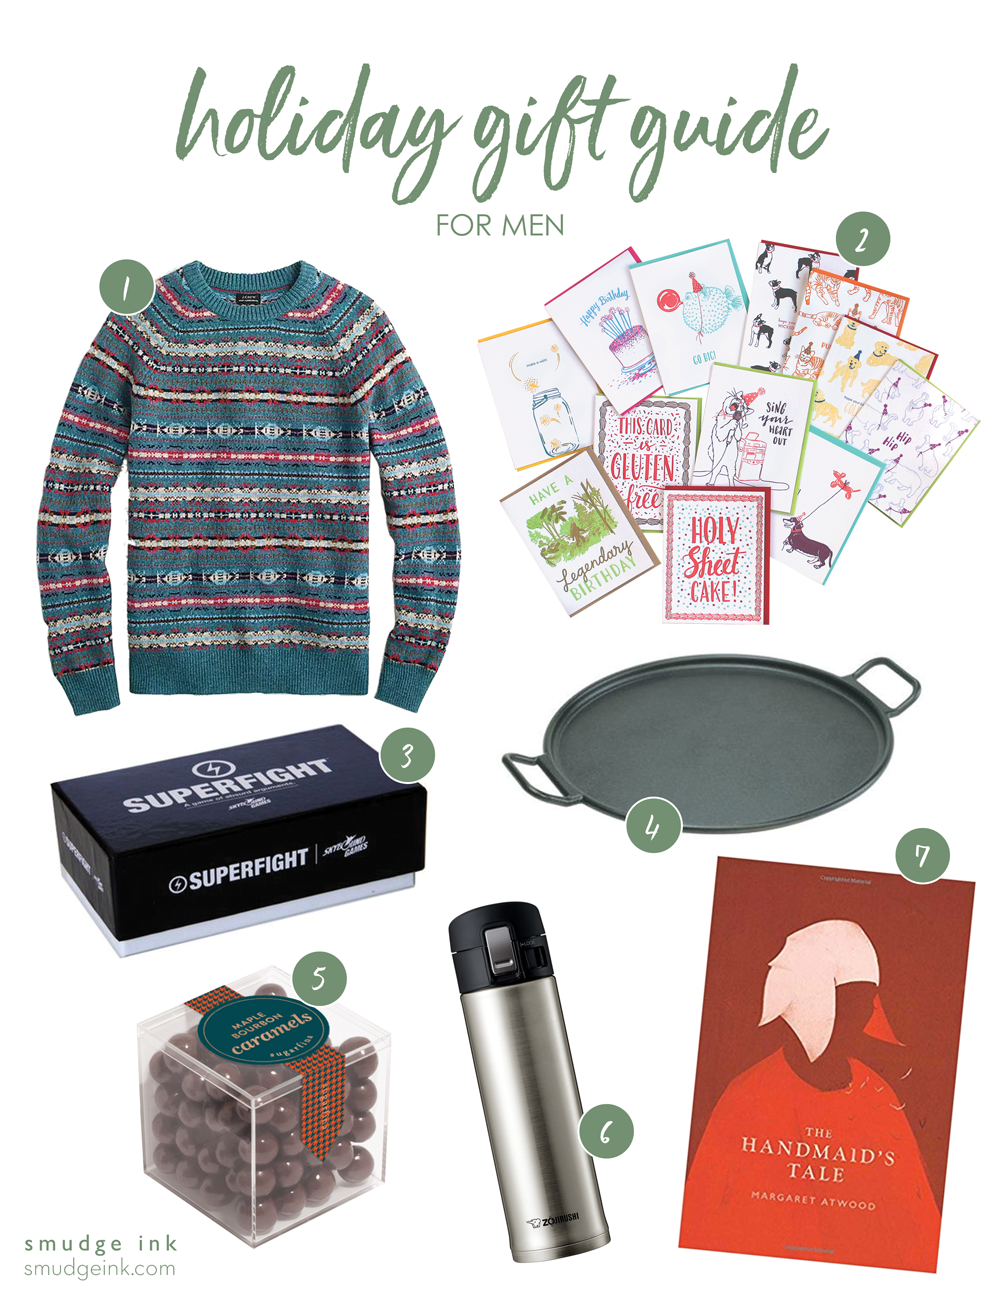 2018 Holiday Gift Guide for Men by Smudge Ink